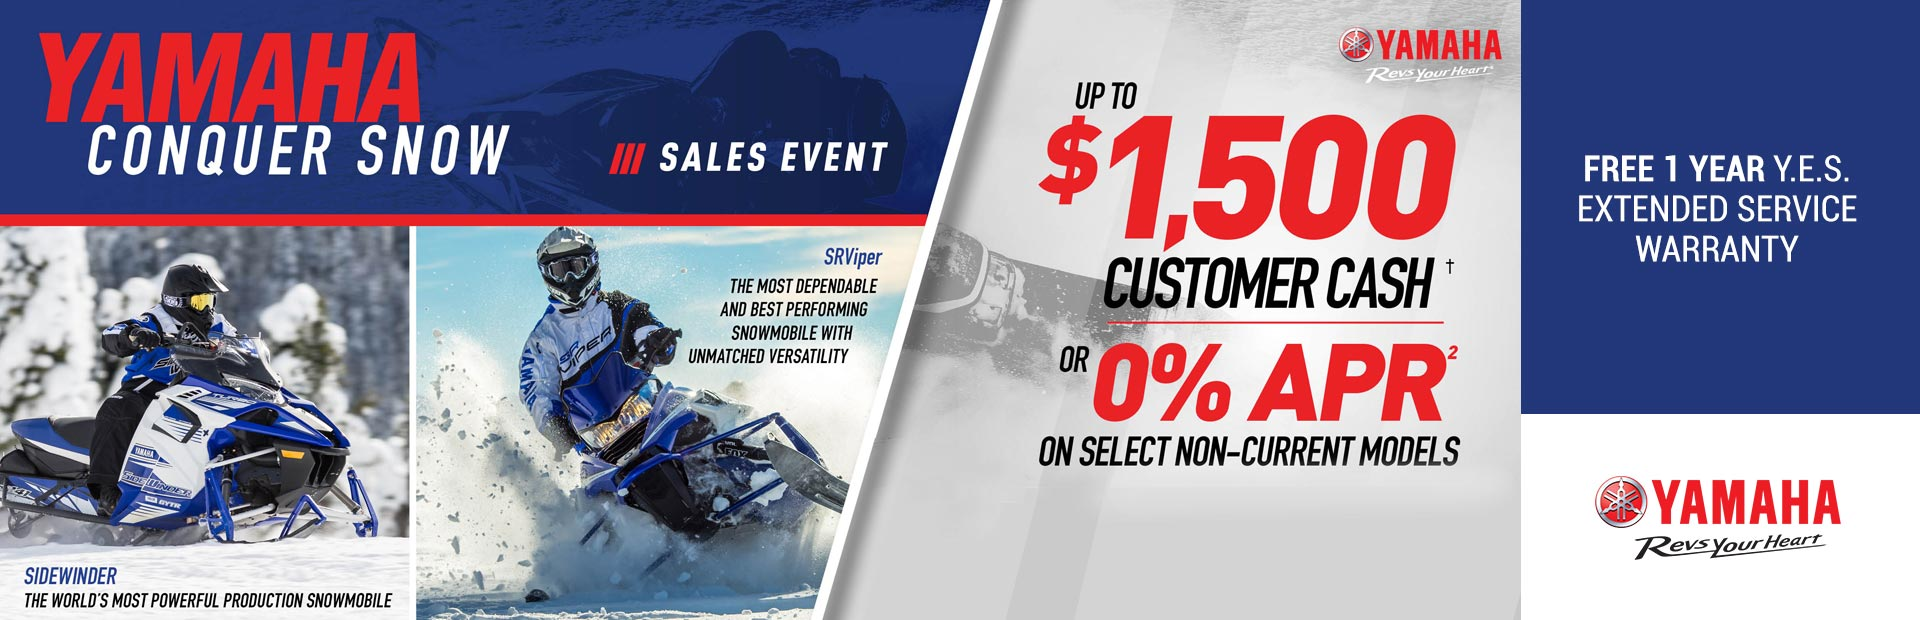 Yamaha: Free 1 Year Y.E.S. Extended Service Warranty